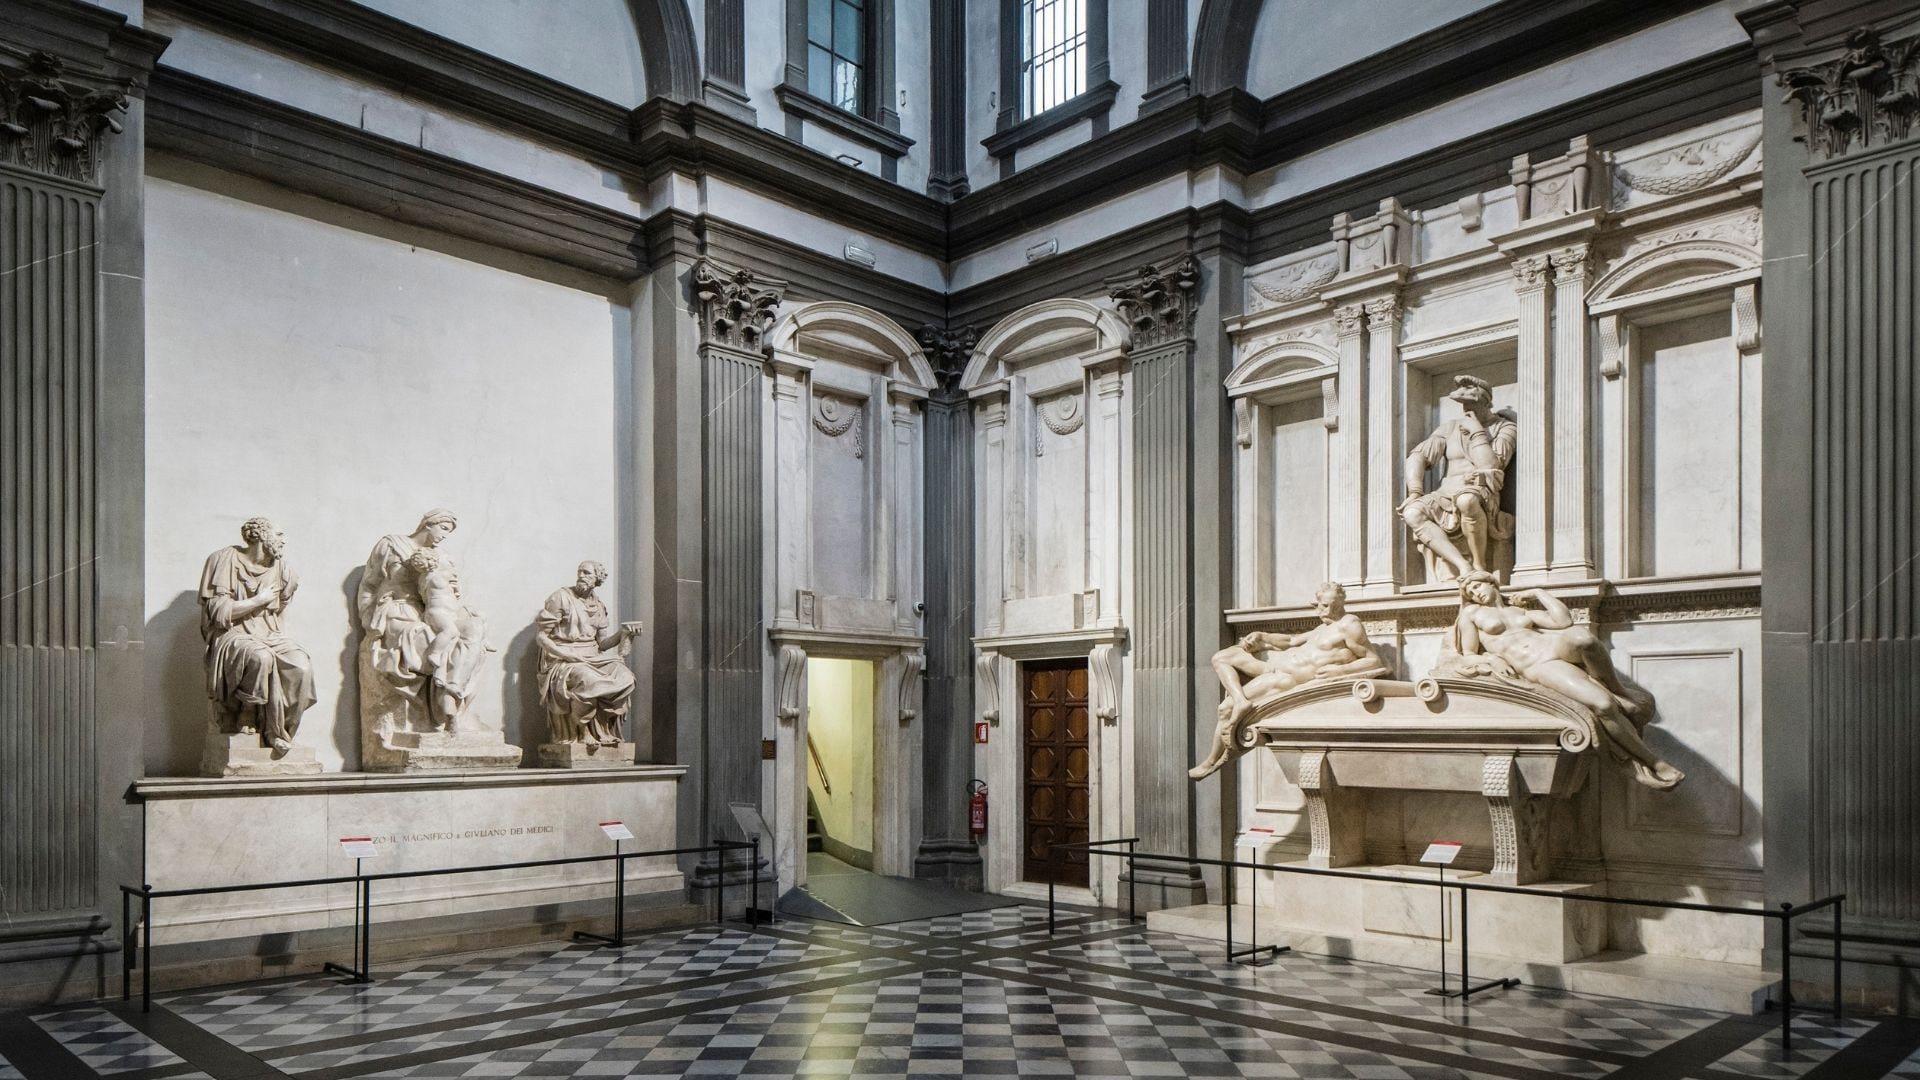 Amid COVID-19 pandemic, restorers in Florence's Medici Chapel unleash grime-eating bacteria to clean Michelangelo's sculptures